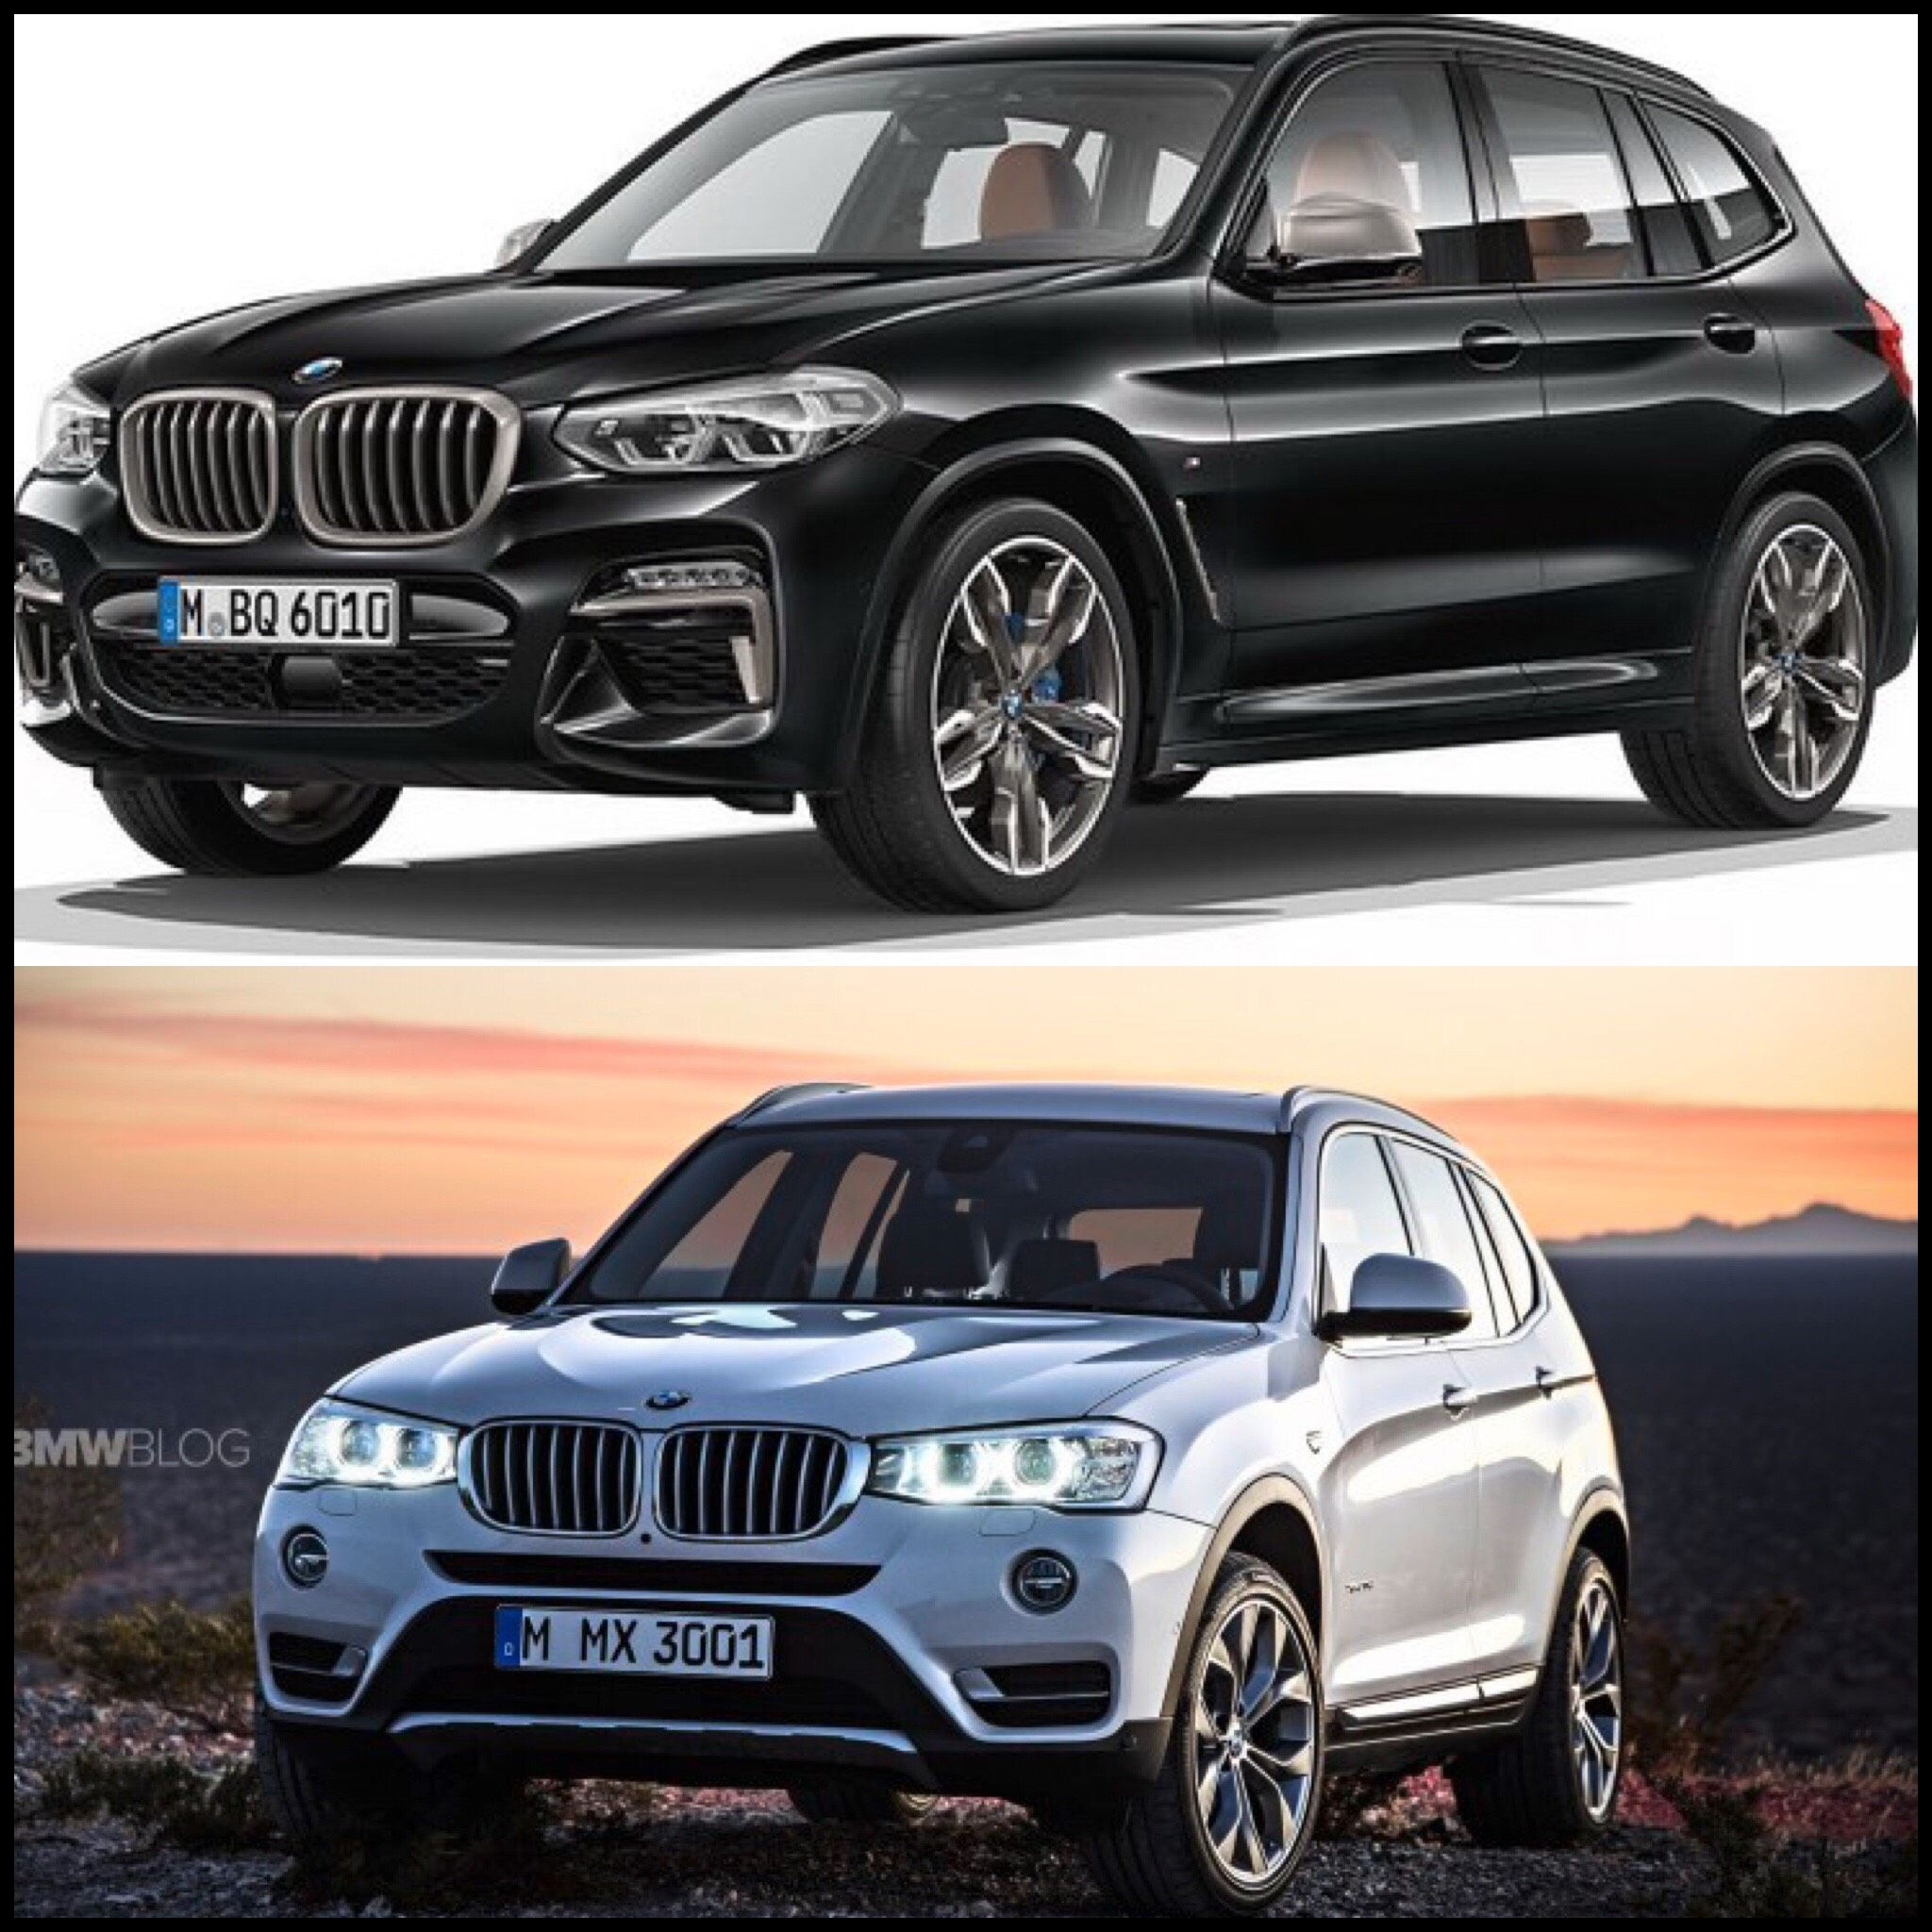 2018 Bmw X3m Exterior and Interior Review Parison G01 Bmw X3 Vs F25 Bmw X3 Price